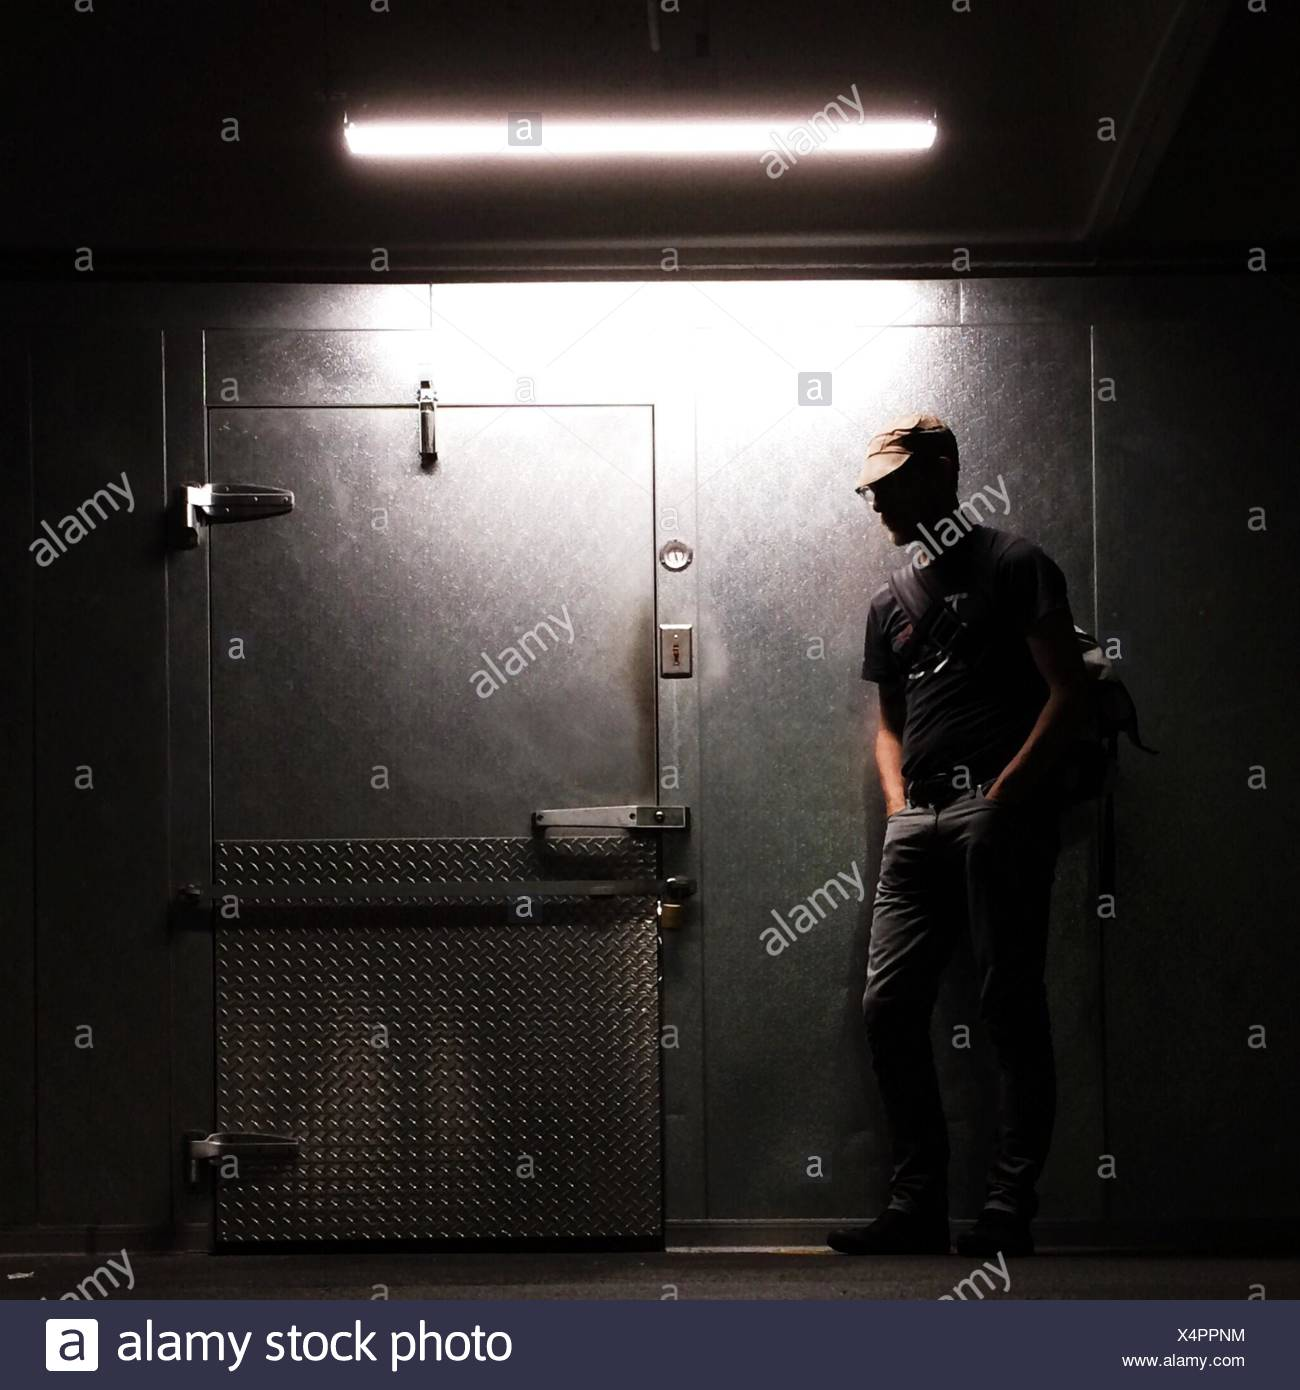 Man Looking At Locked Door - Stock Image